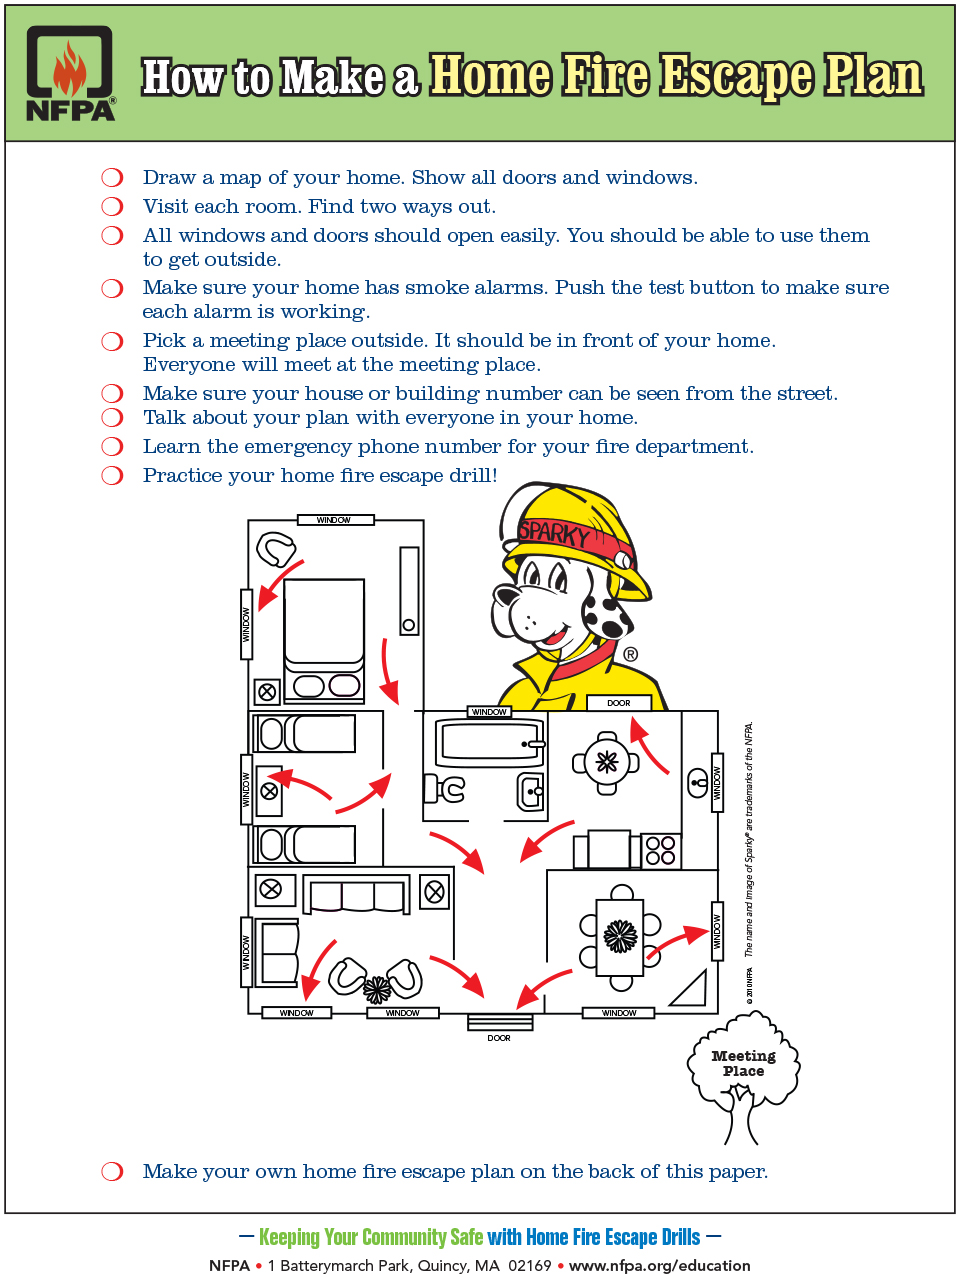 Make Your Own Home Fire Escape Plan